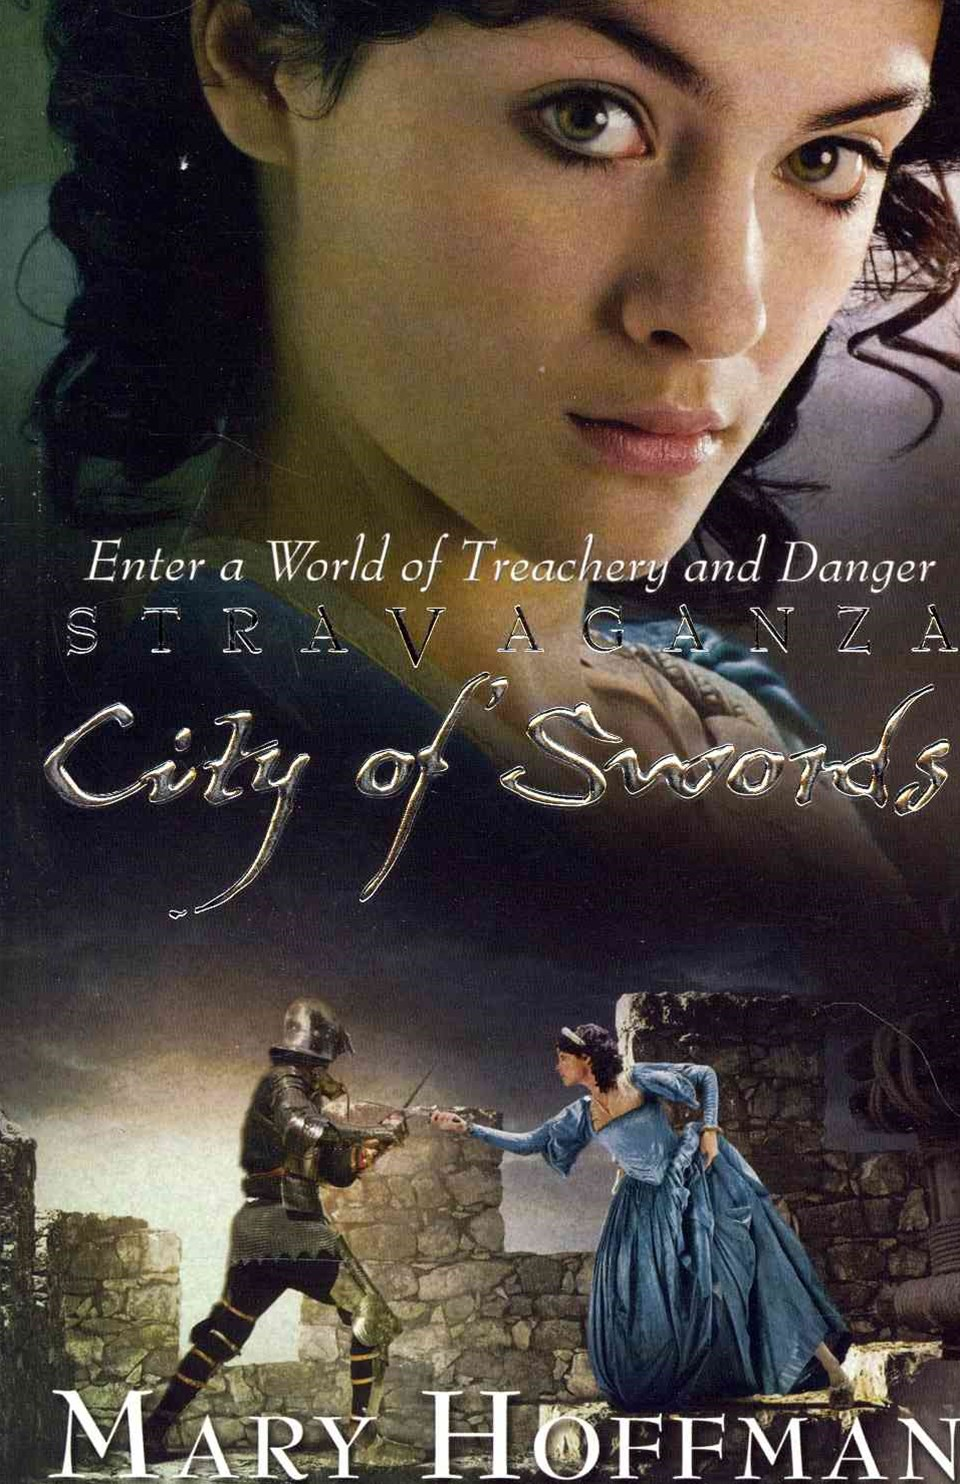 Stravaganza - City of Swords